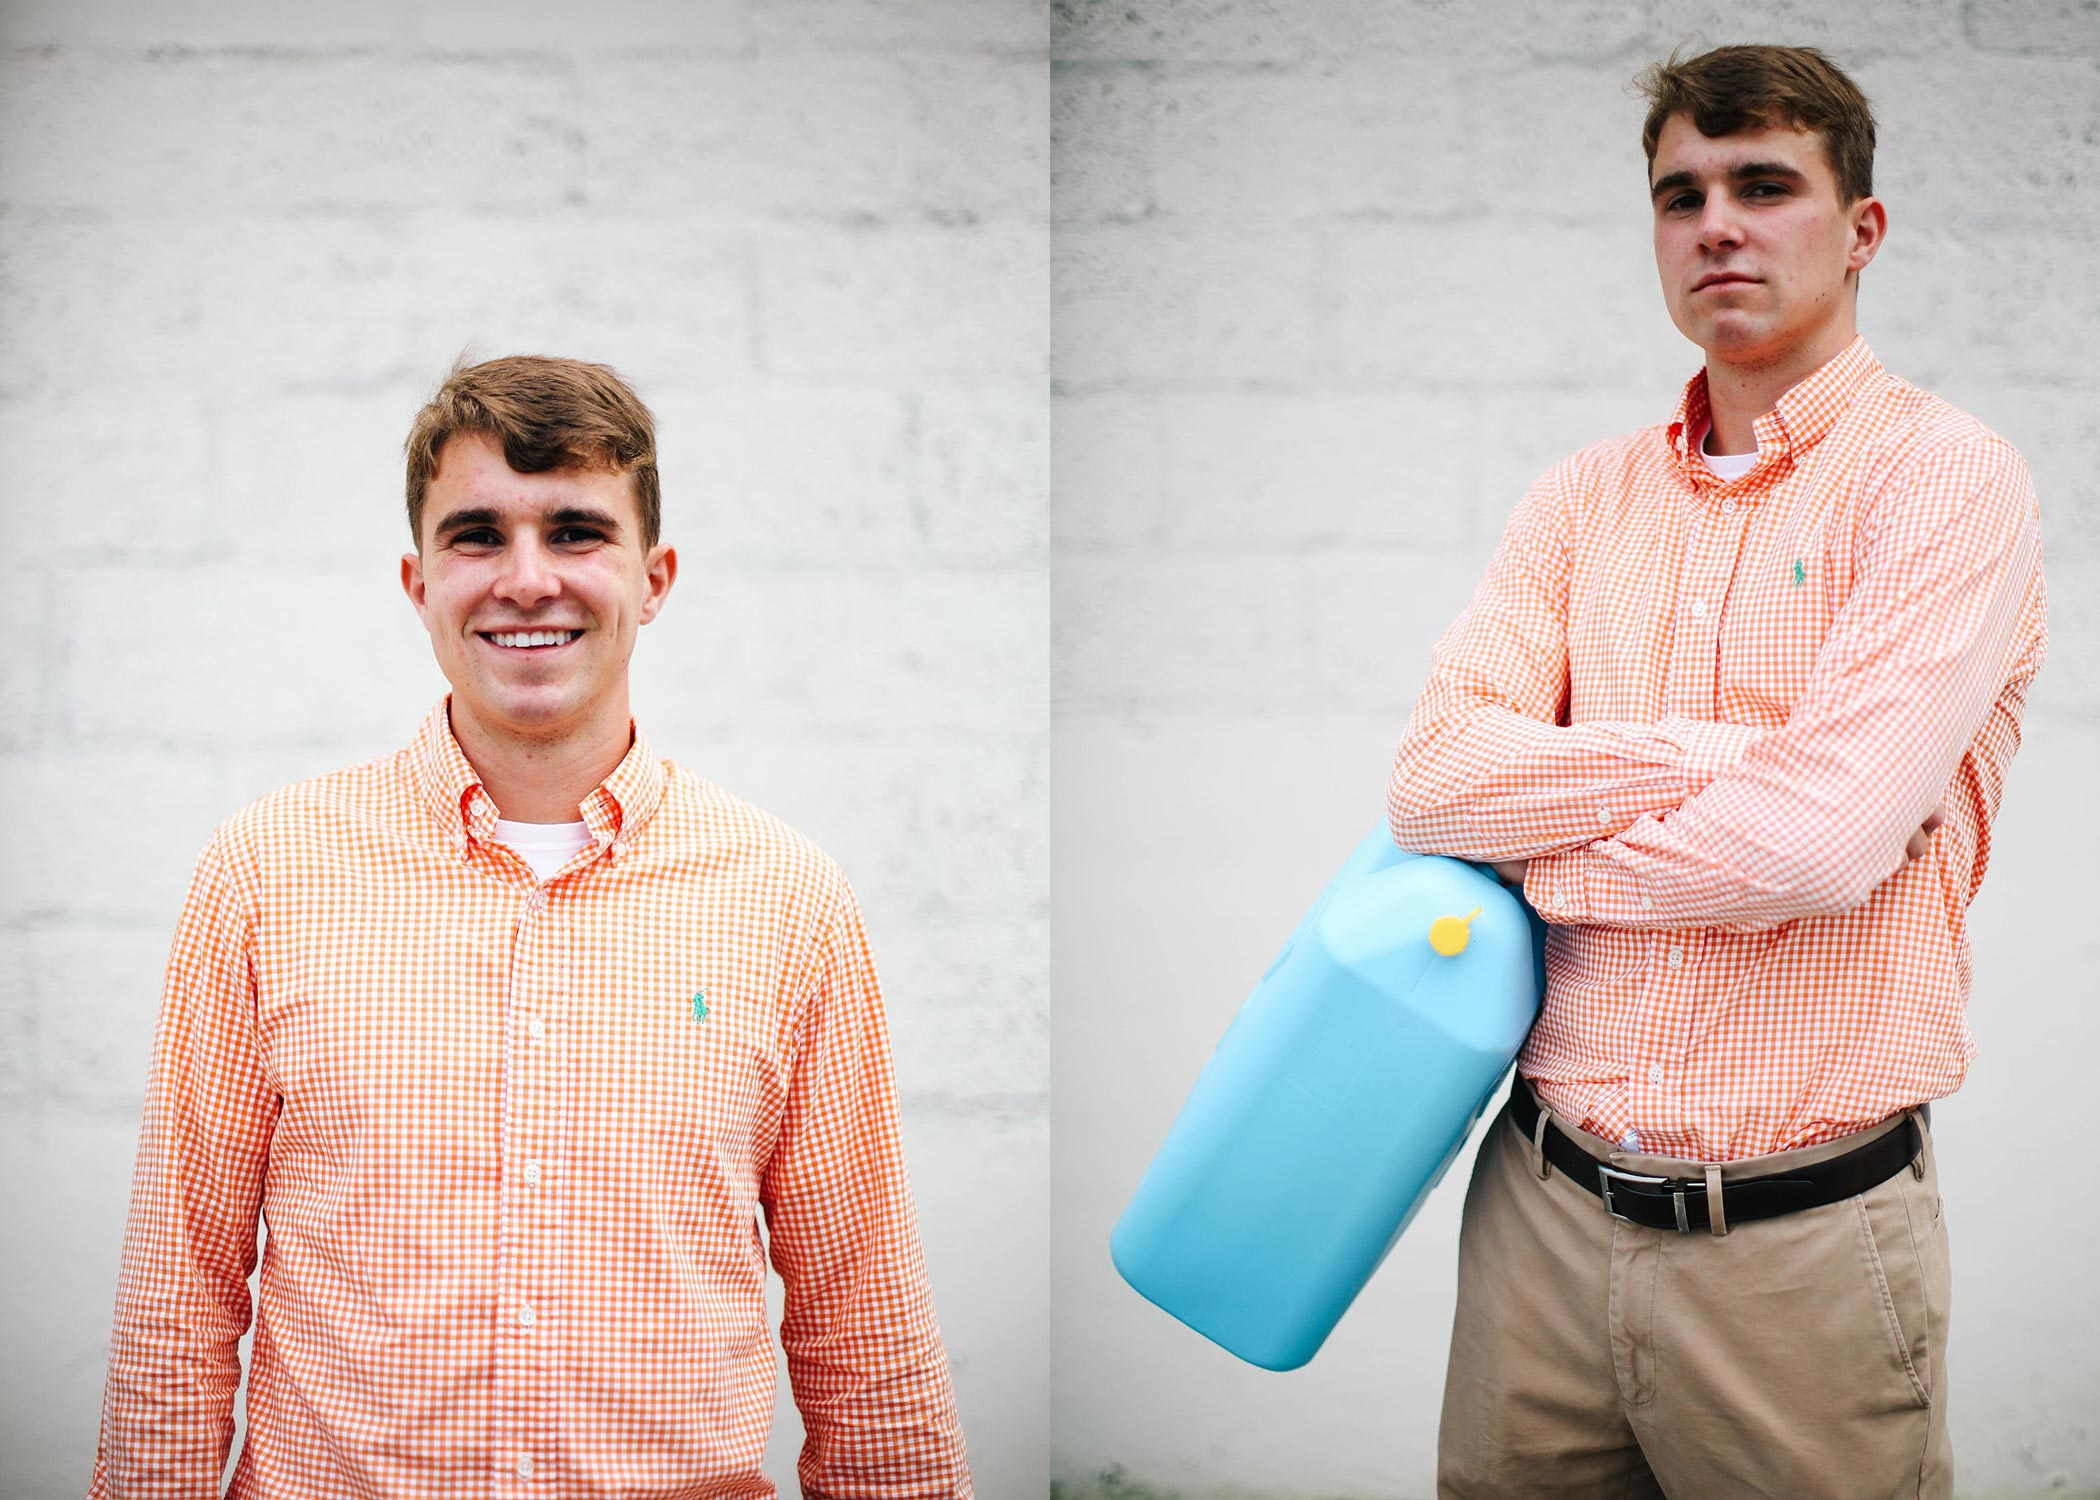 Zach worked as an intern for Water Mission.